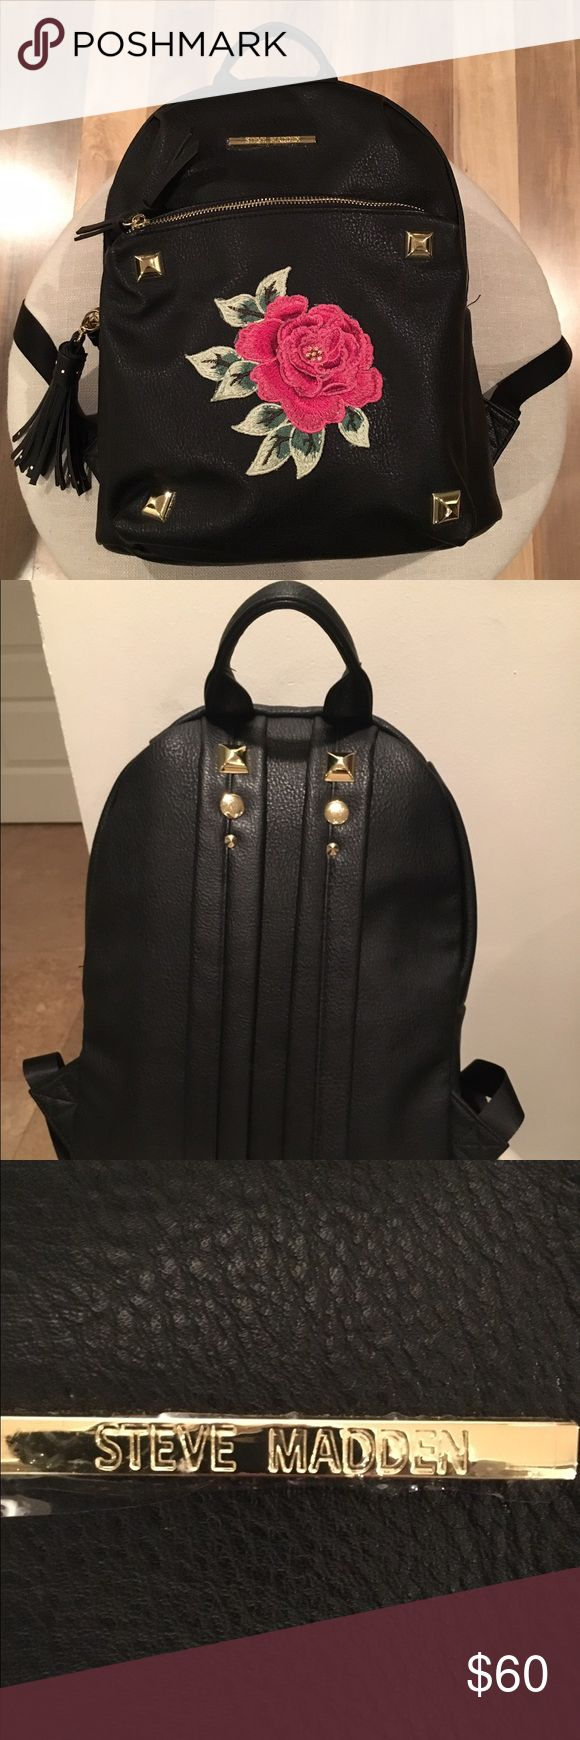 Brand new Steve Madden backpack This is a cute new Steve Madden backpack. Black with a pink rose design on the front. Gold colored embellishments and a black tassel (removable). Never used! Steve Madden Bags Backpacks